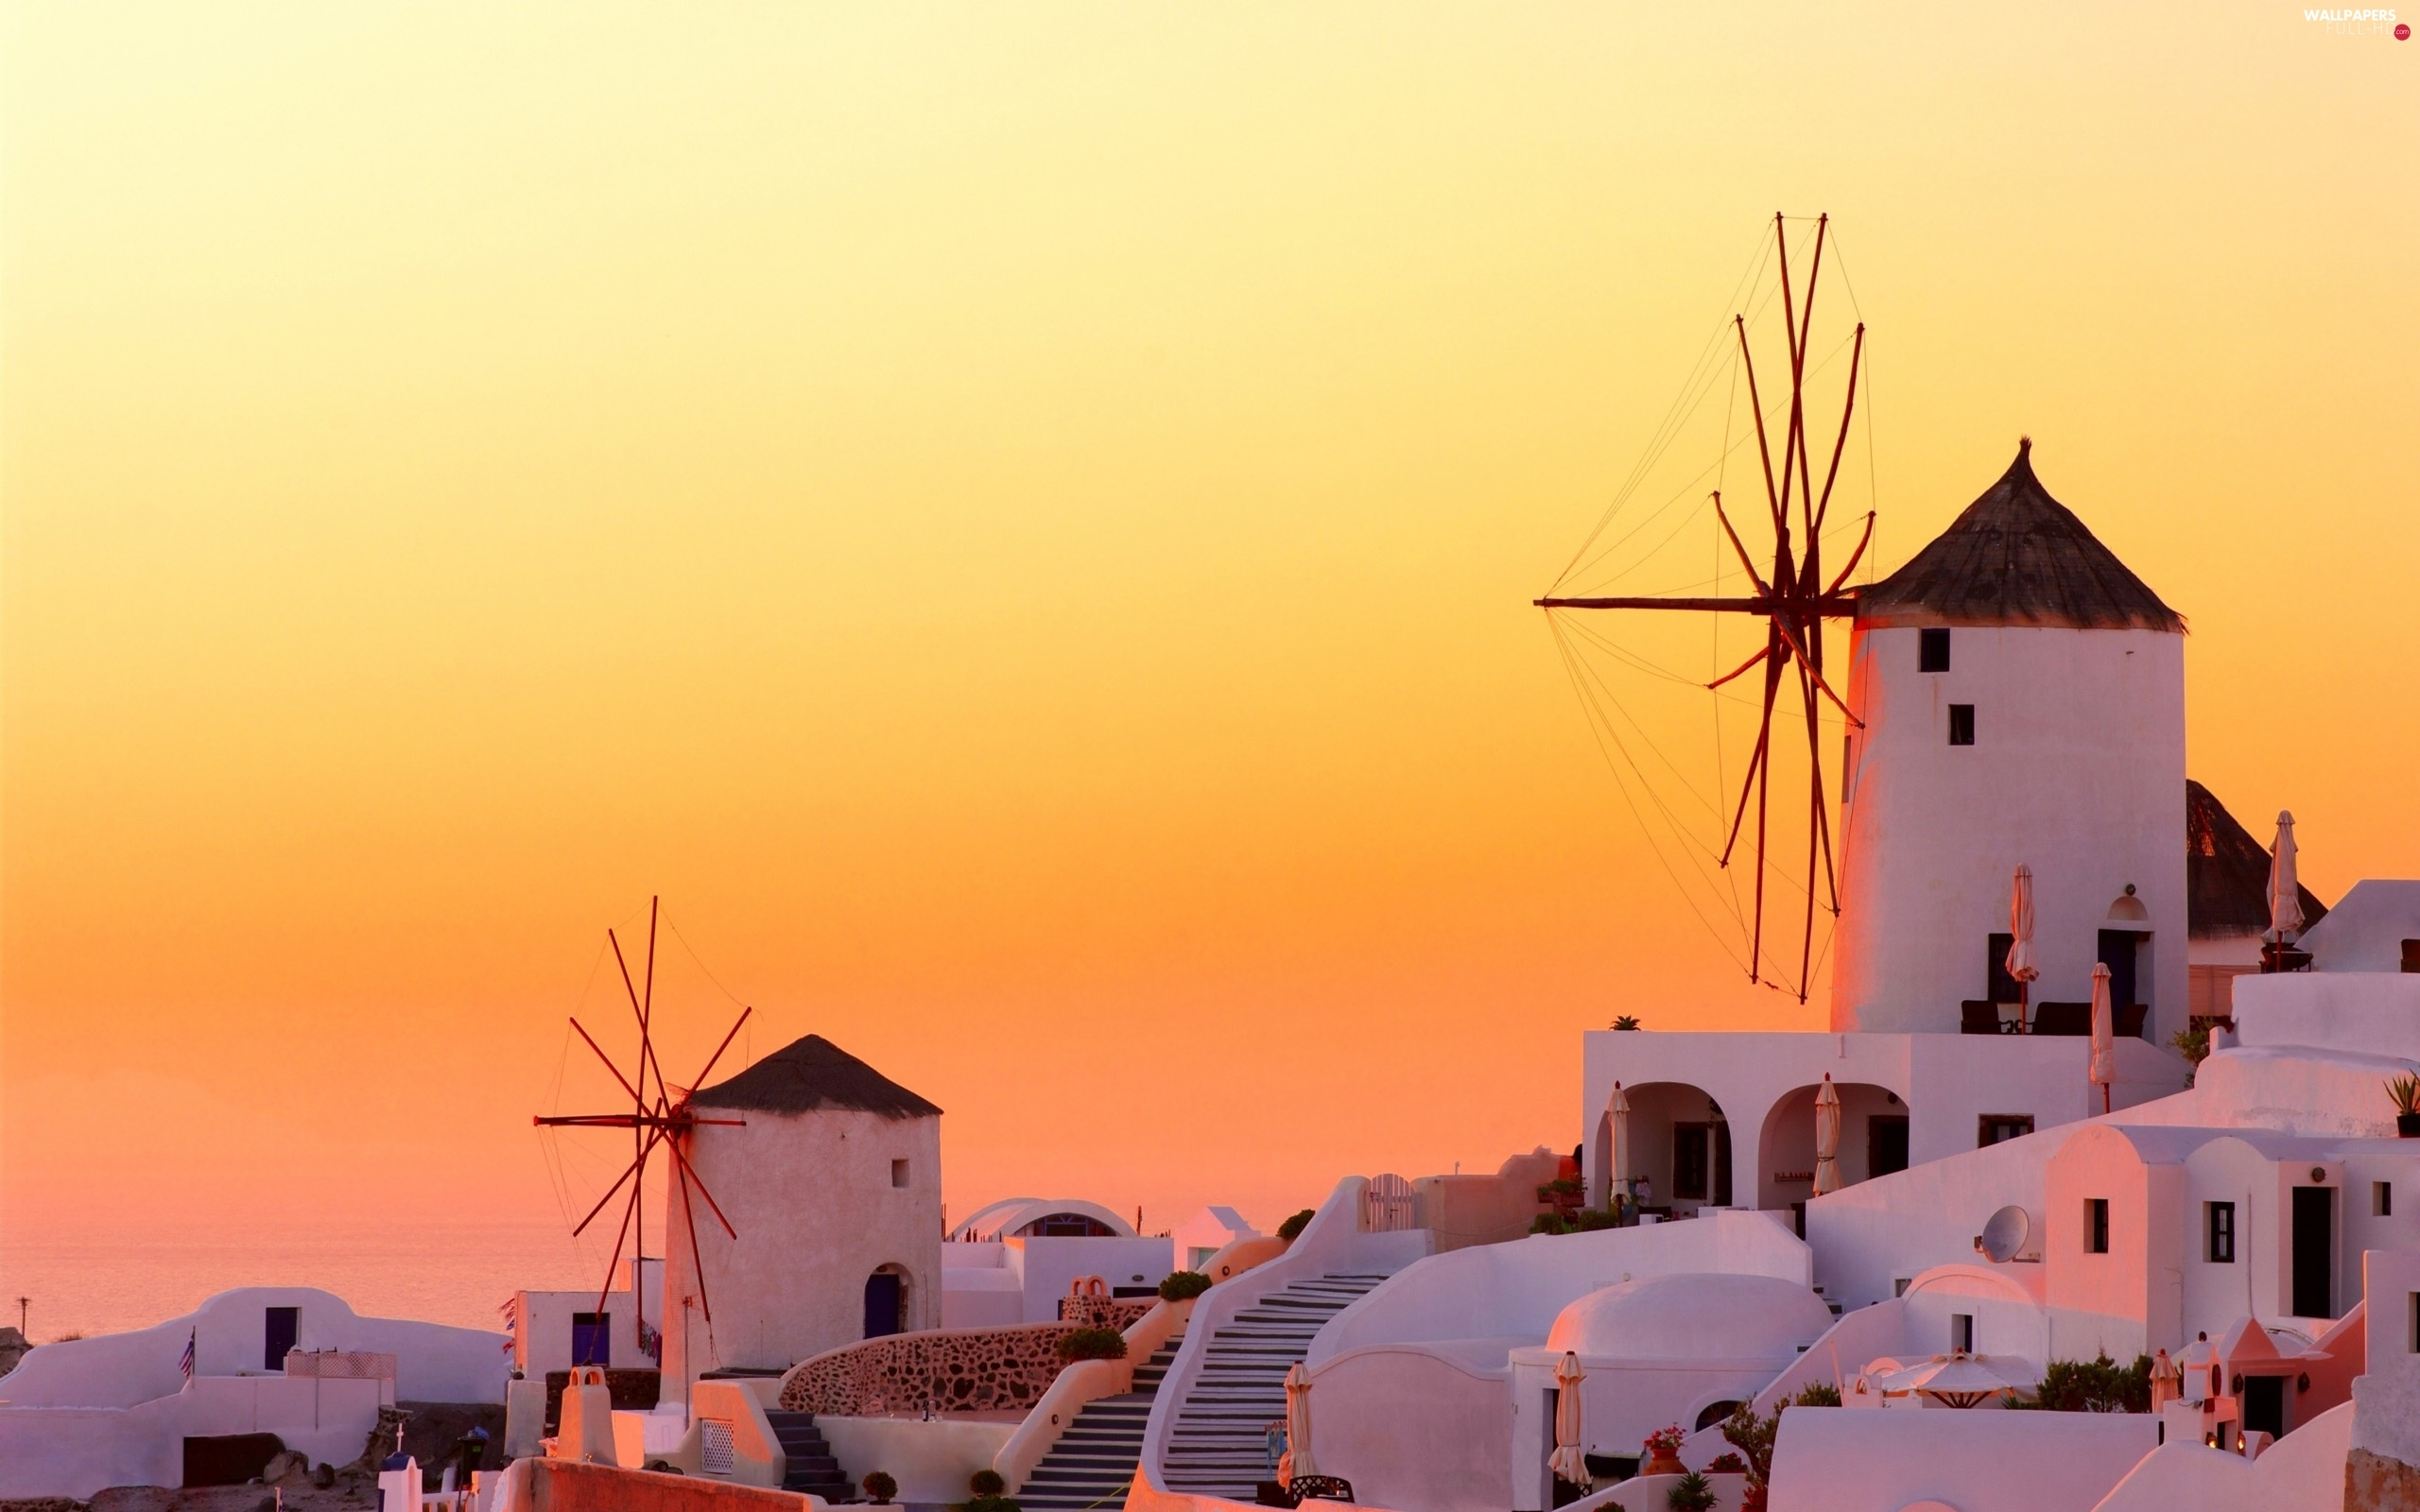 west, santorini, Greece, Windmills, sun, Houses